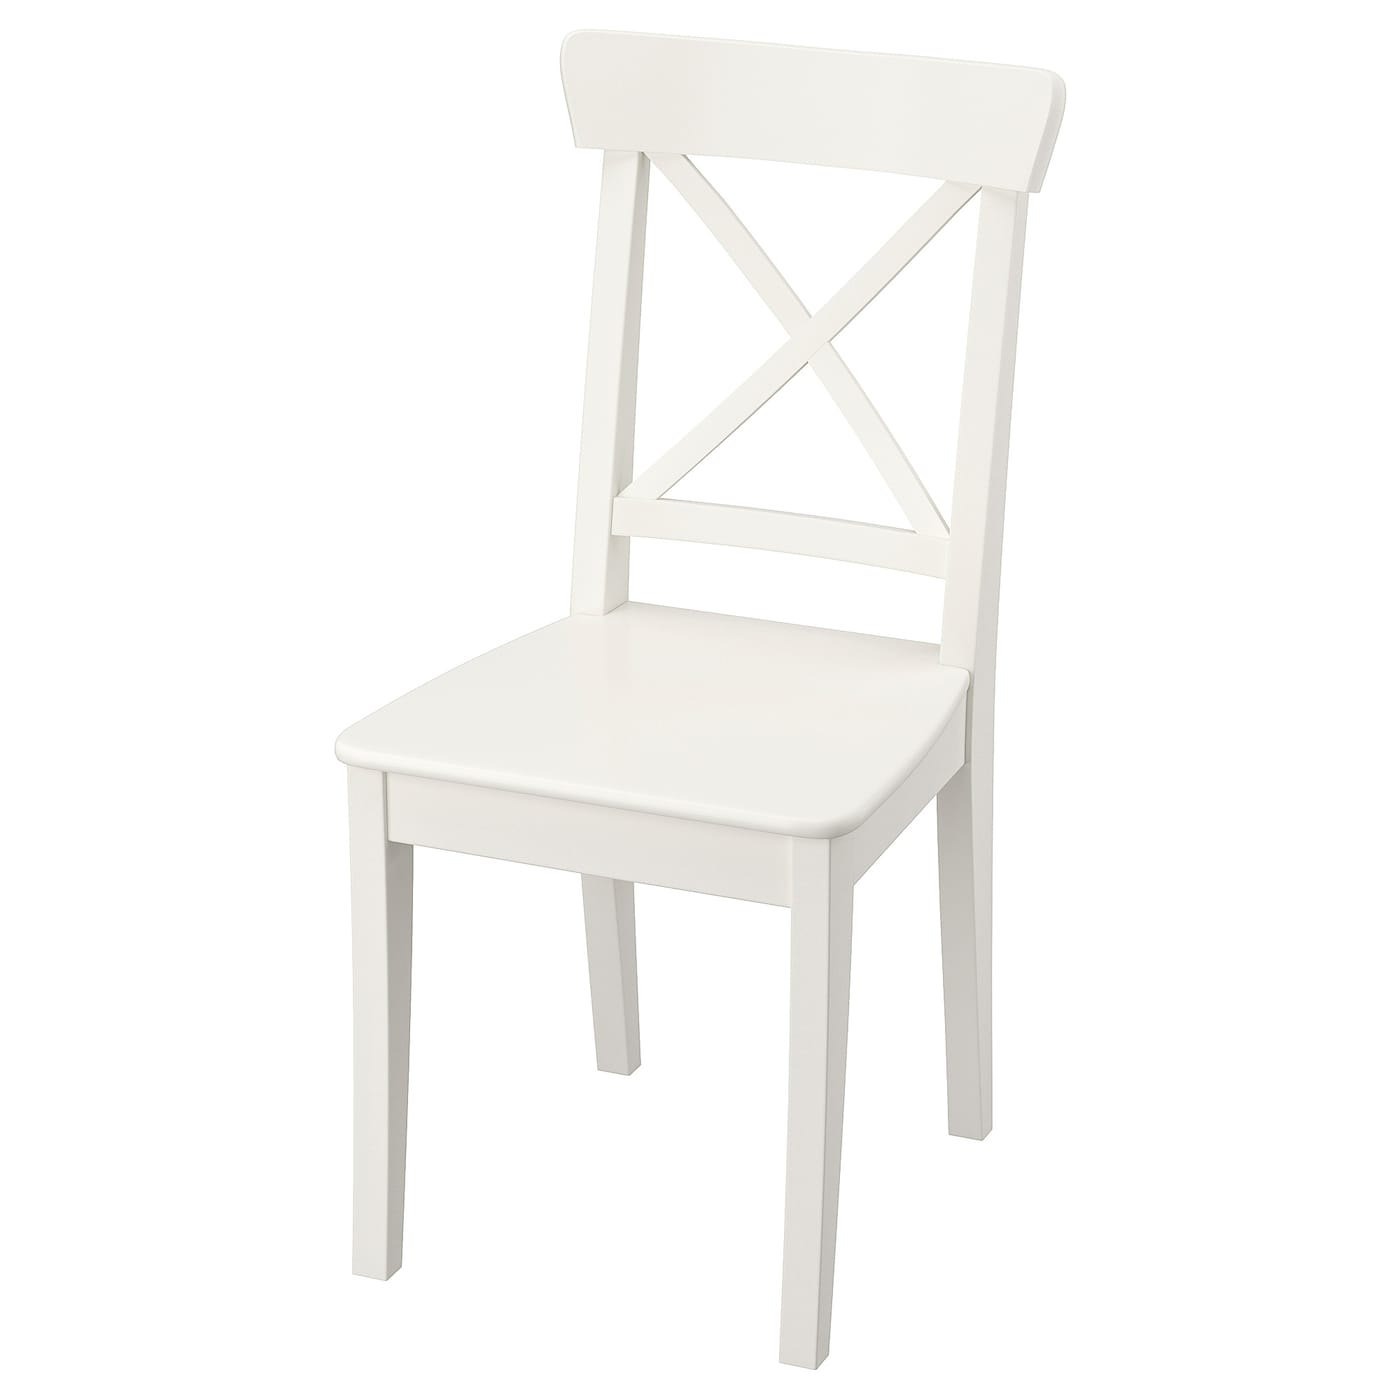 INGOLF Chair - white